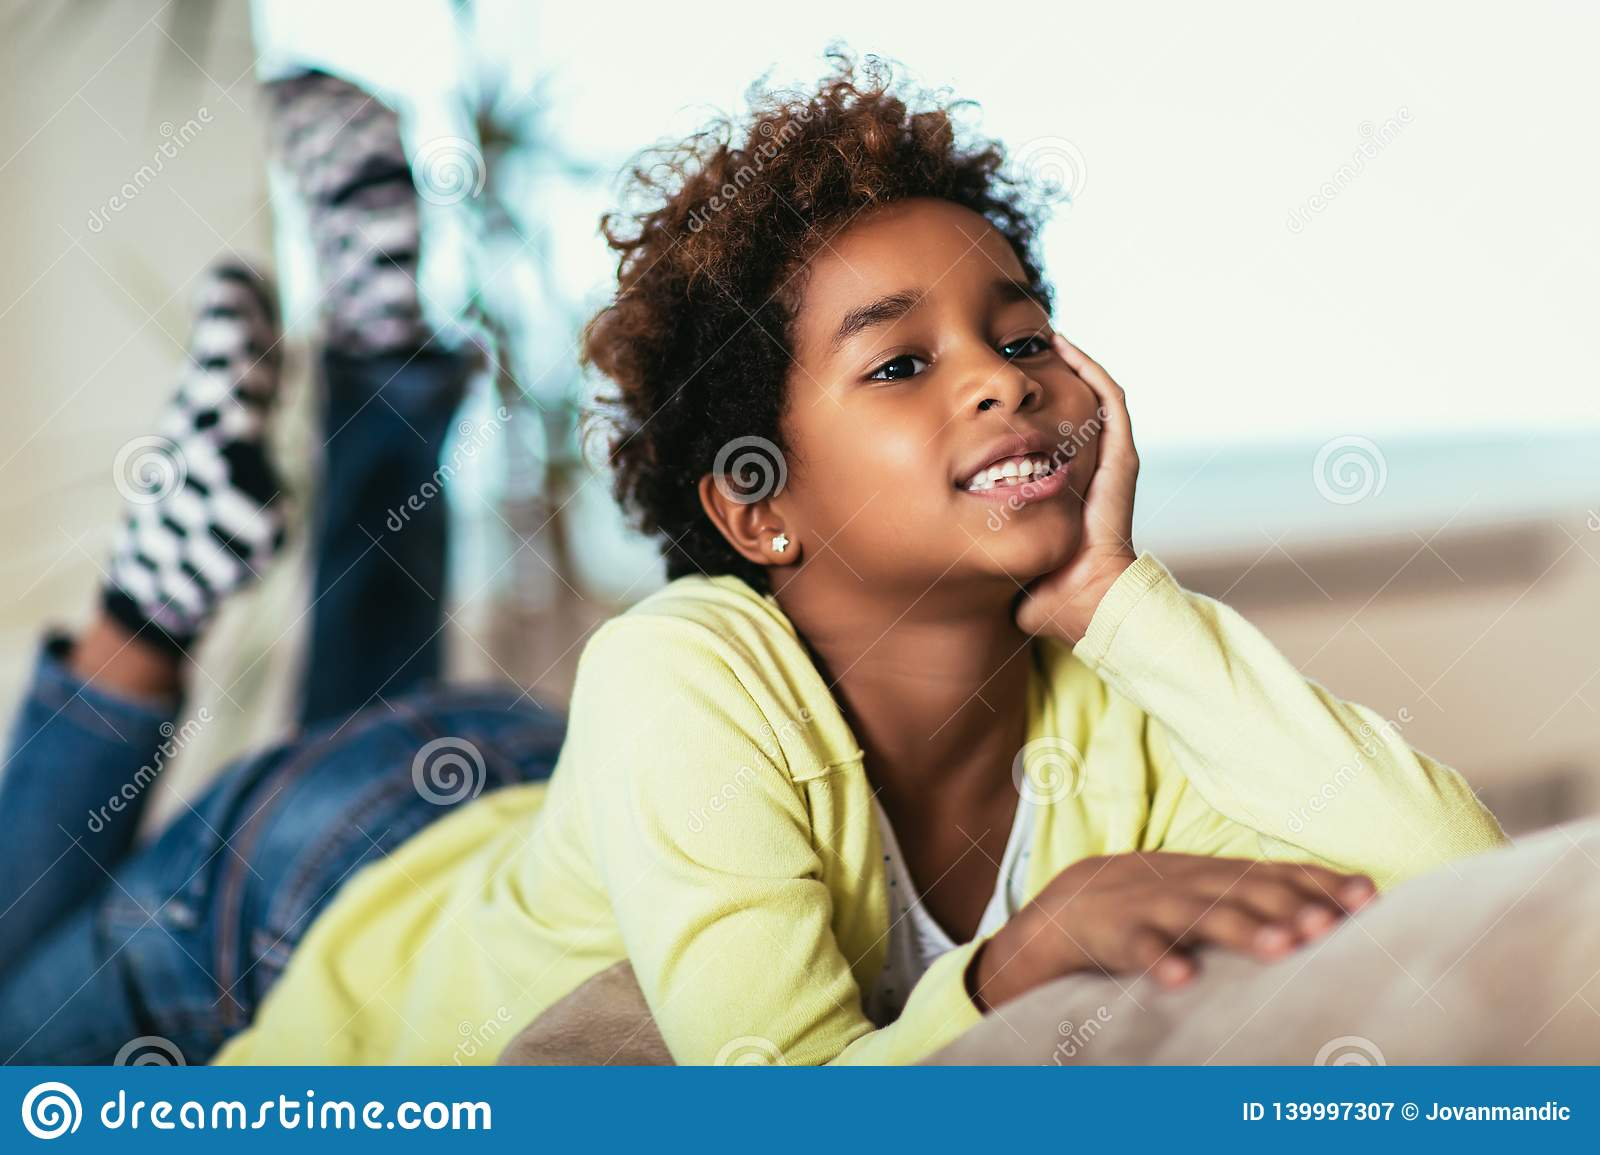 Funny little african american girl looking at camera, smiling mixed race child posing for portrait at home